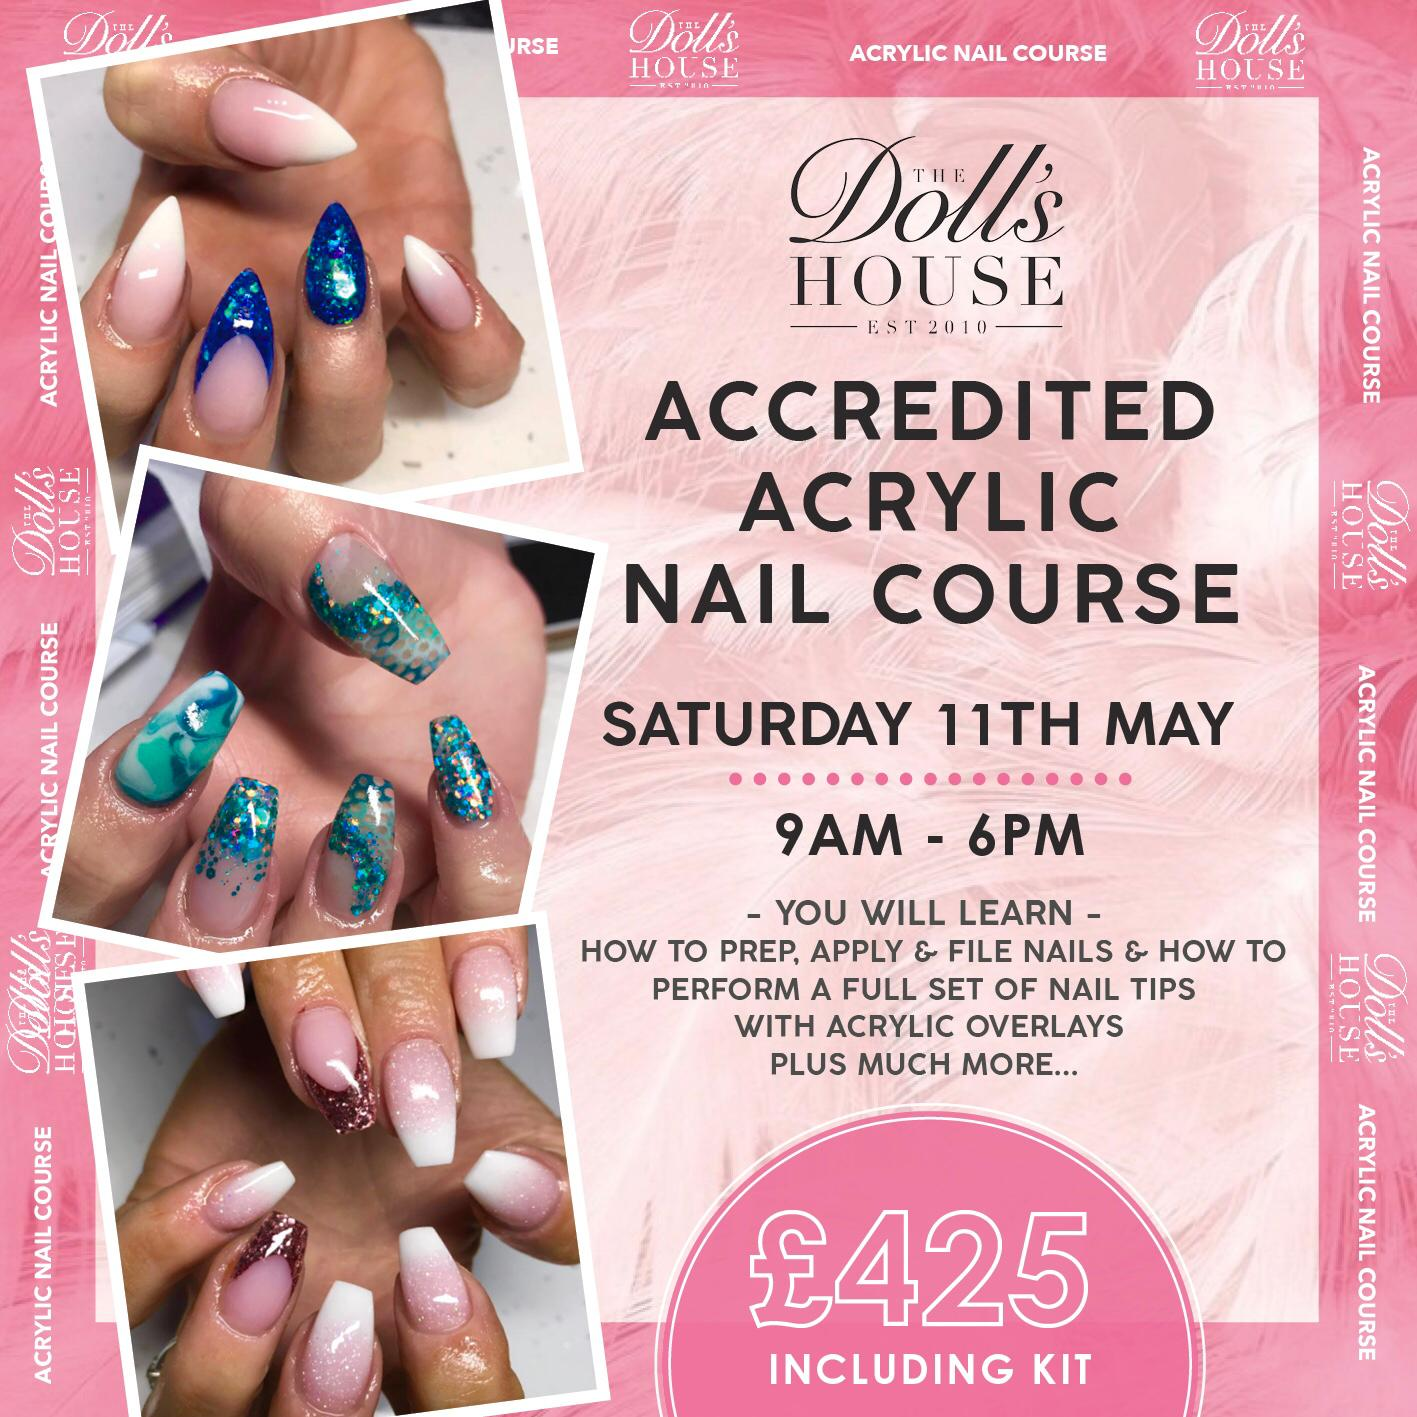 FULLY ACCREDITED ACRYLIC NAIL COURSE